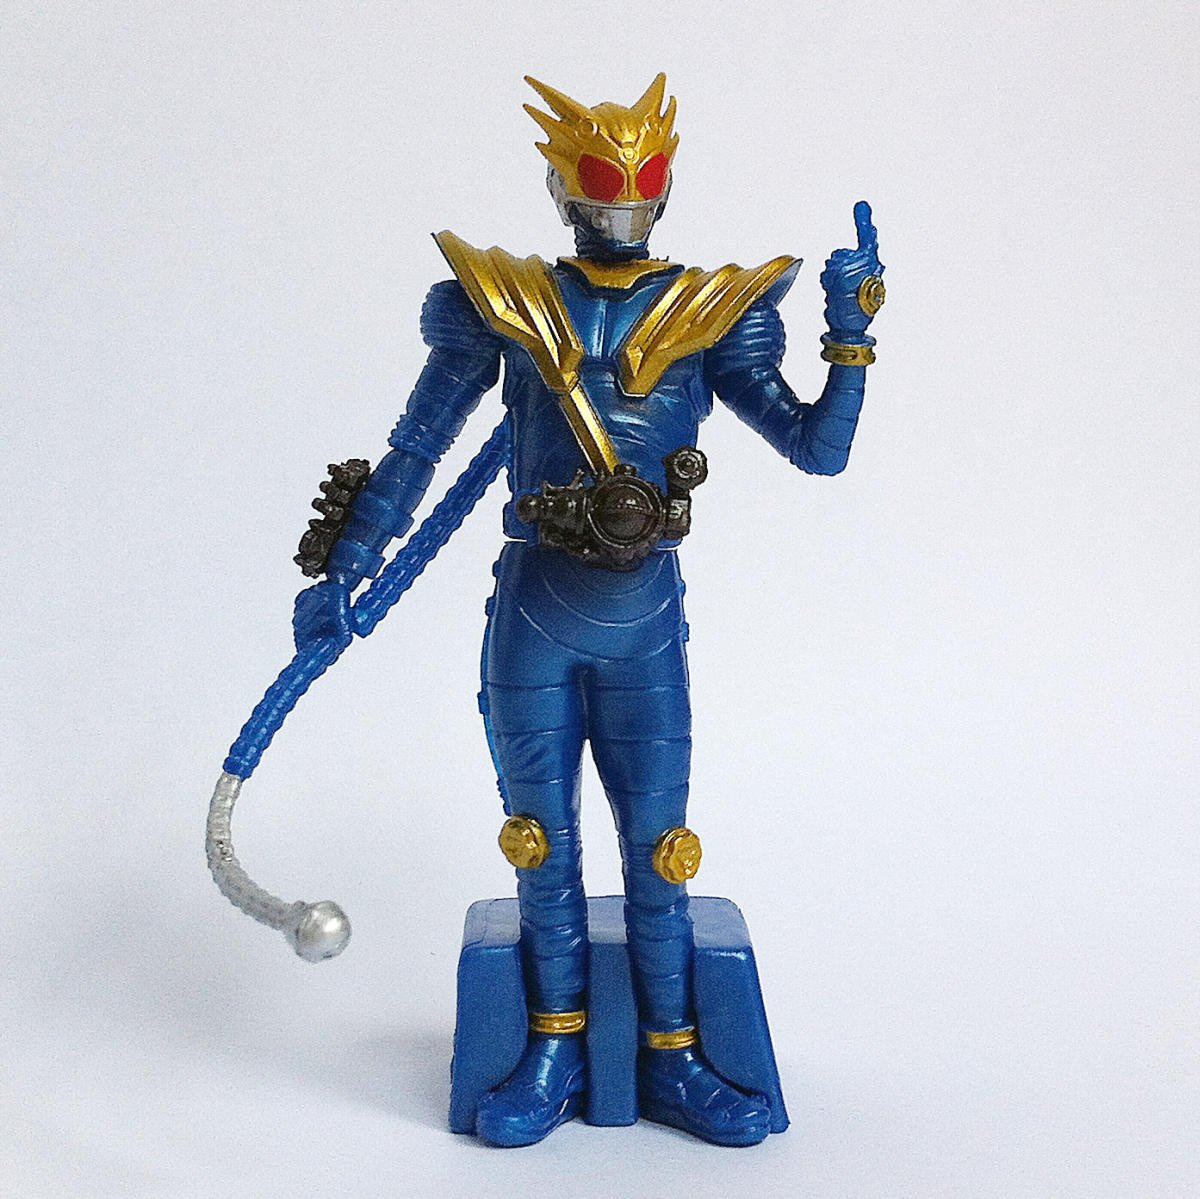 Kamen Rider Meteor Storm from HG Kamen Rider Fourze by Bandai